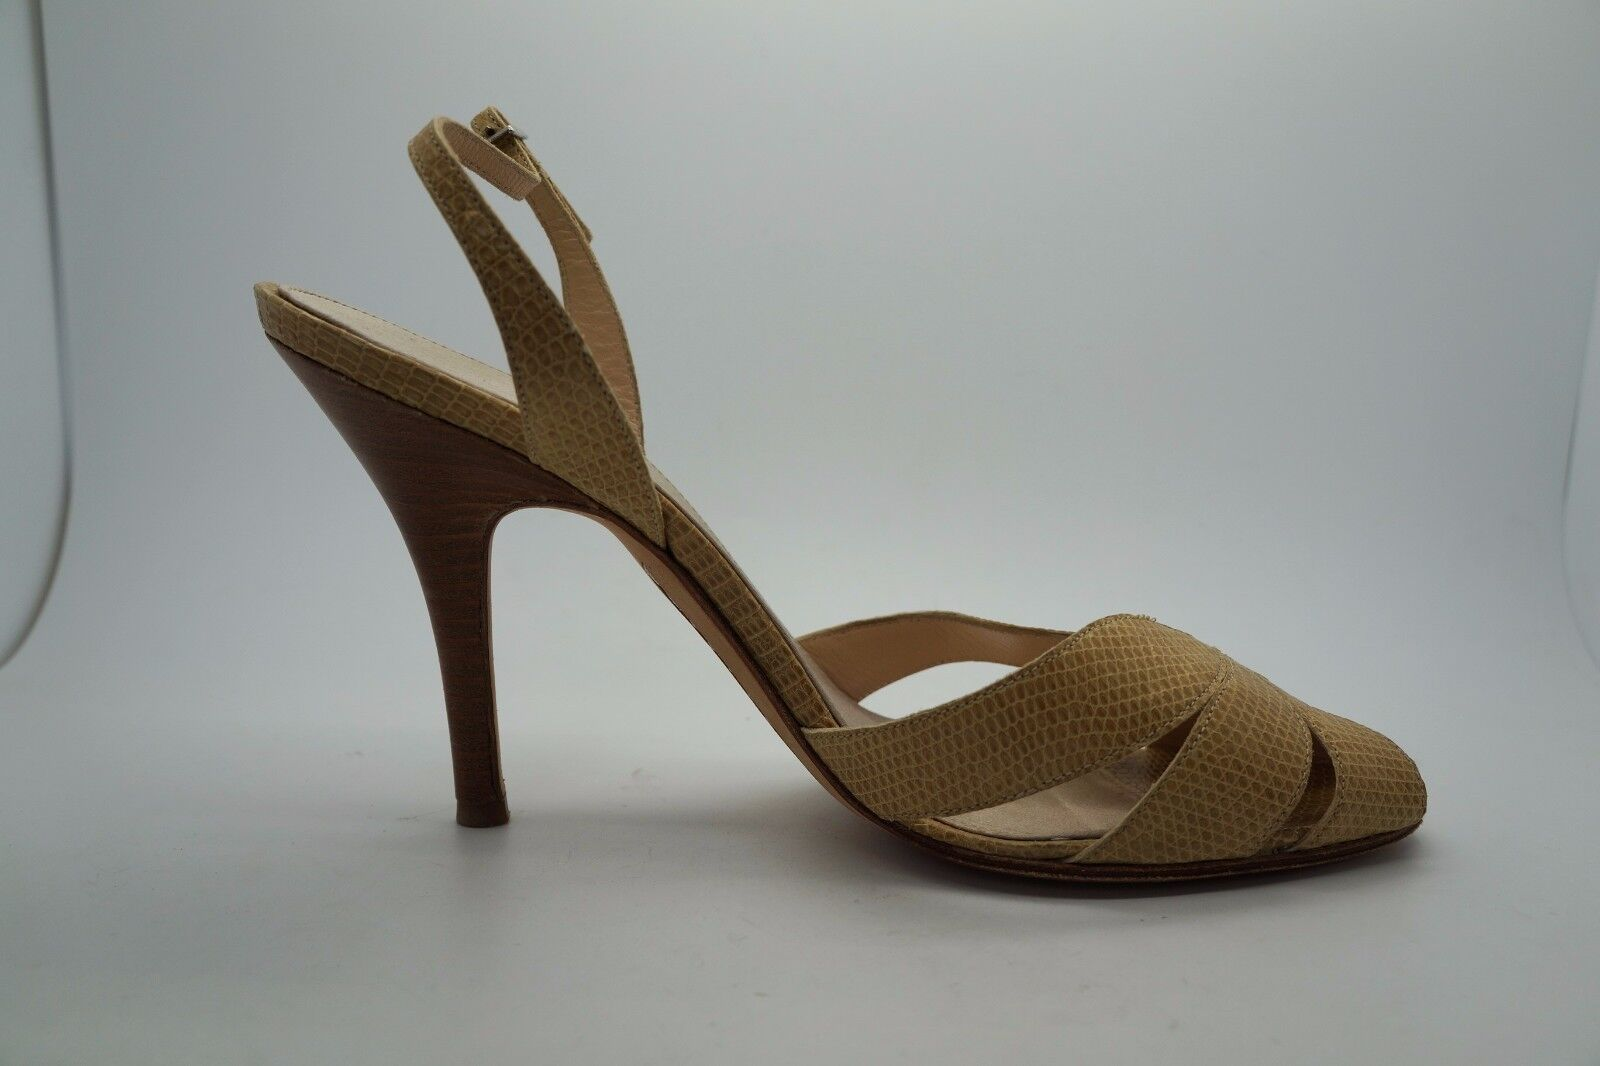 RICHARD SHAH 40 Tan Beige Embossed Leather Strappy Heels Sz 40 SHAH US 10 EUC bb0aa3